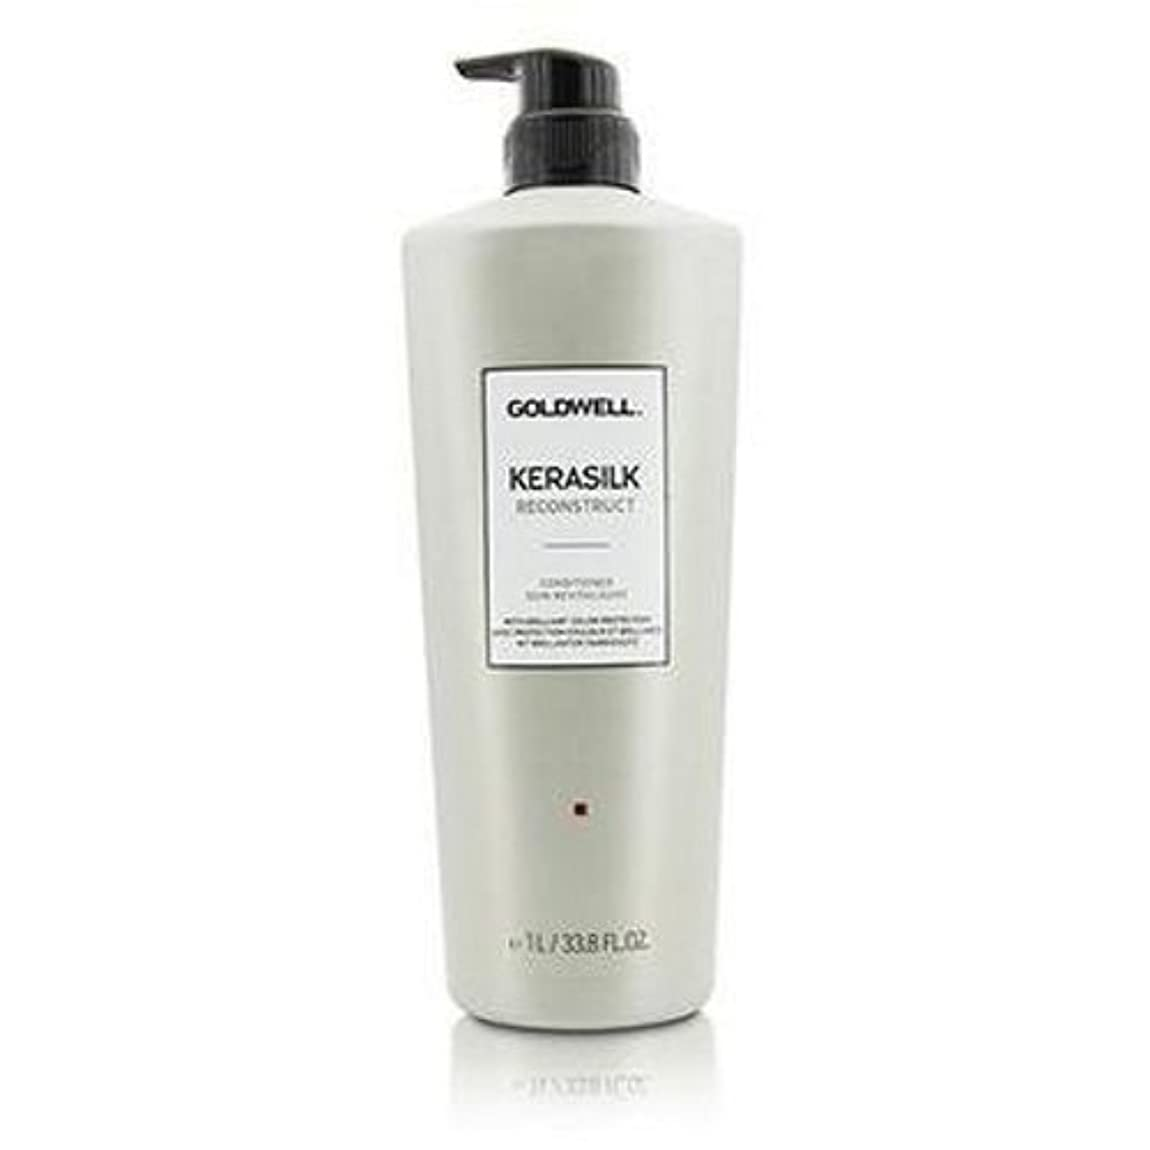 通貨反抗散らすゴールドウェル Kerasilk Reconstruct Conditioner (For Stressed and Damaged Hair) 1000ml